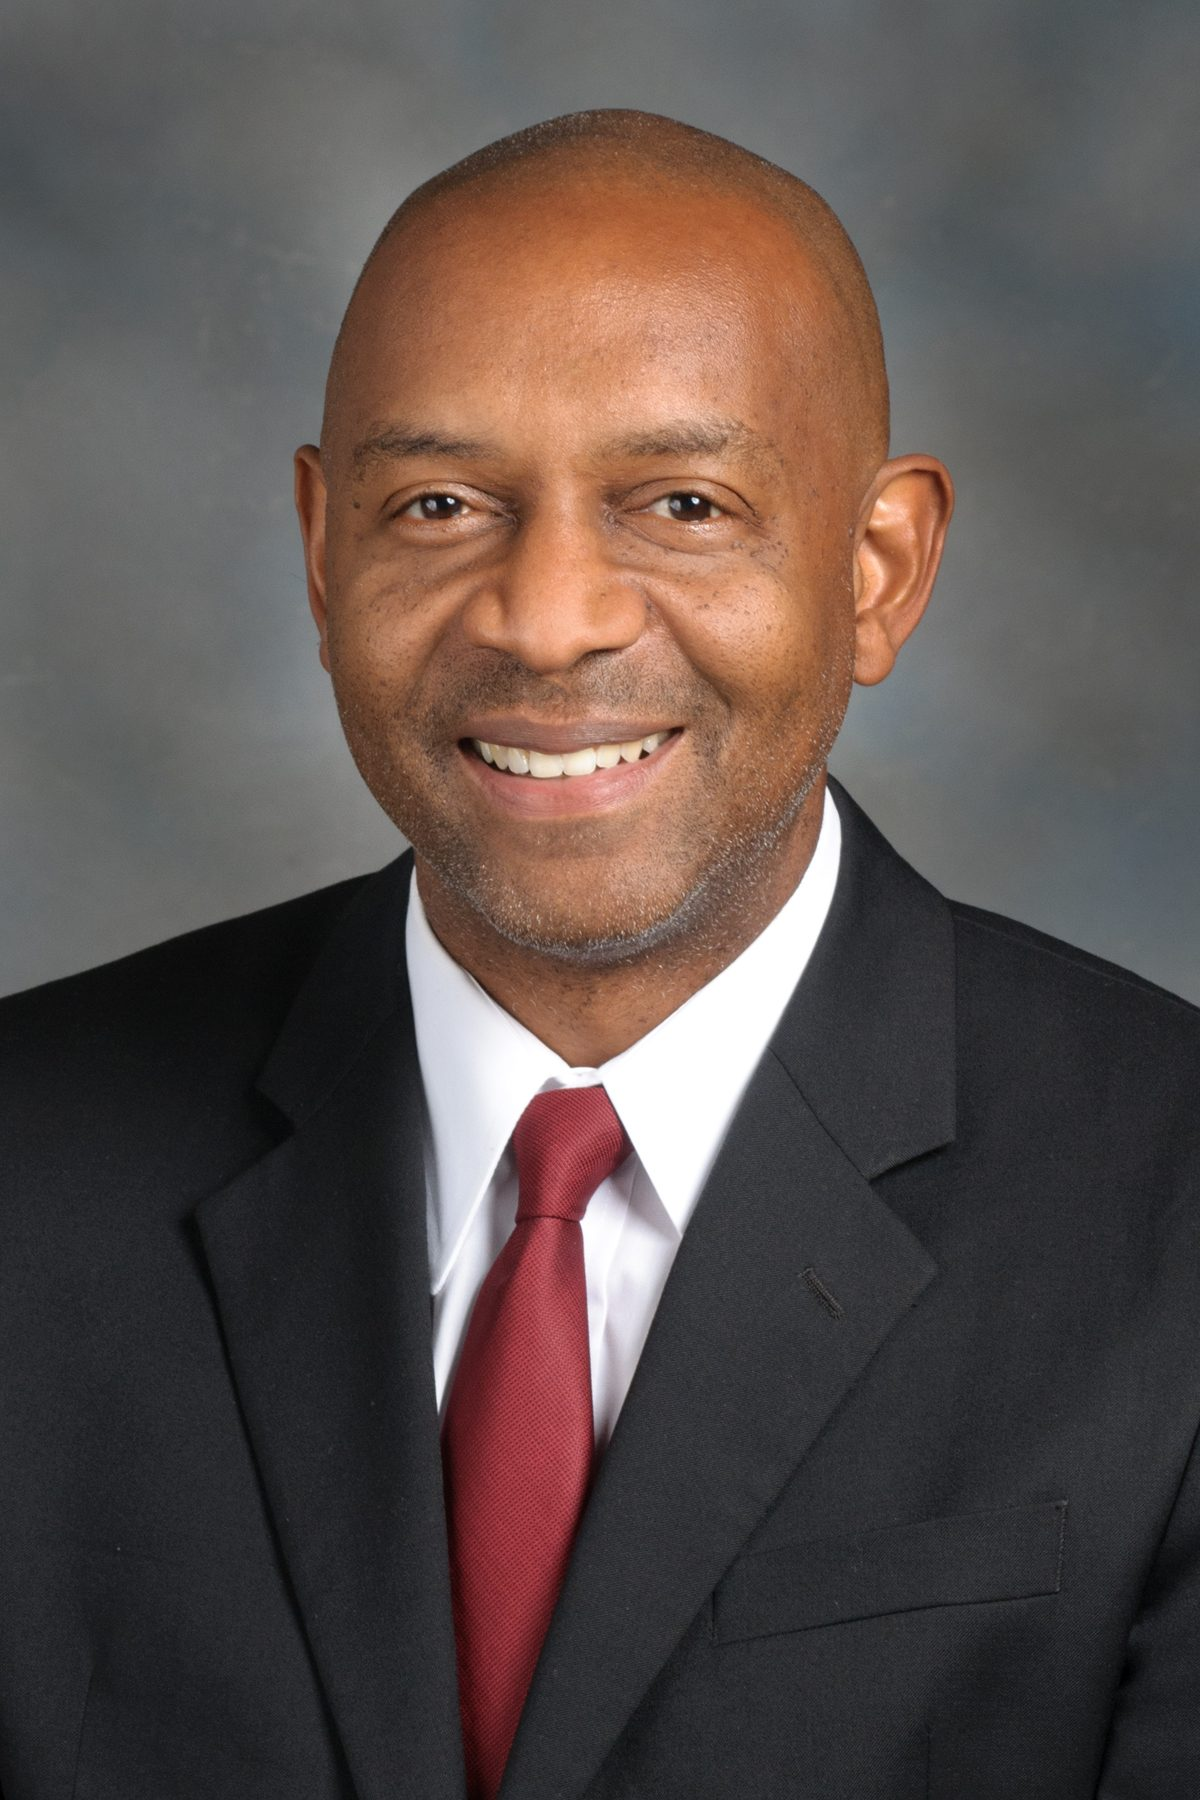 Robert L Satcher Image